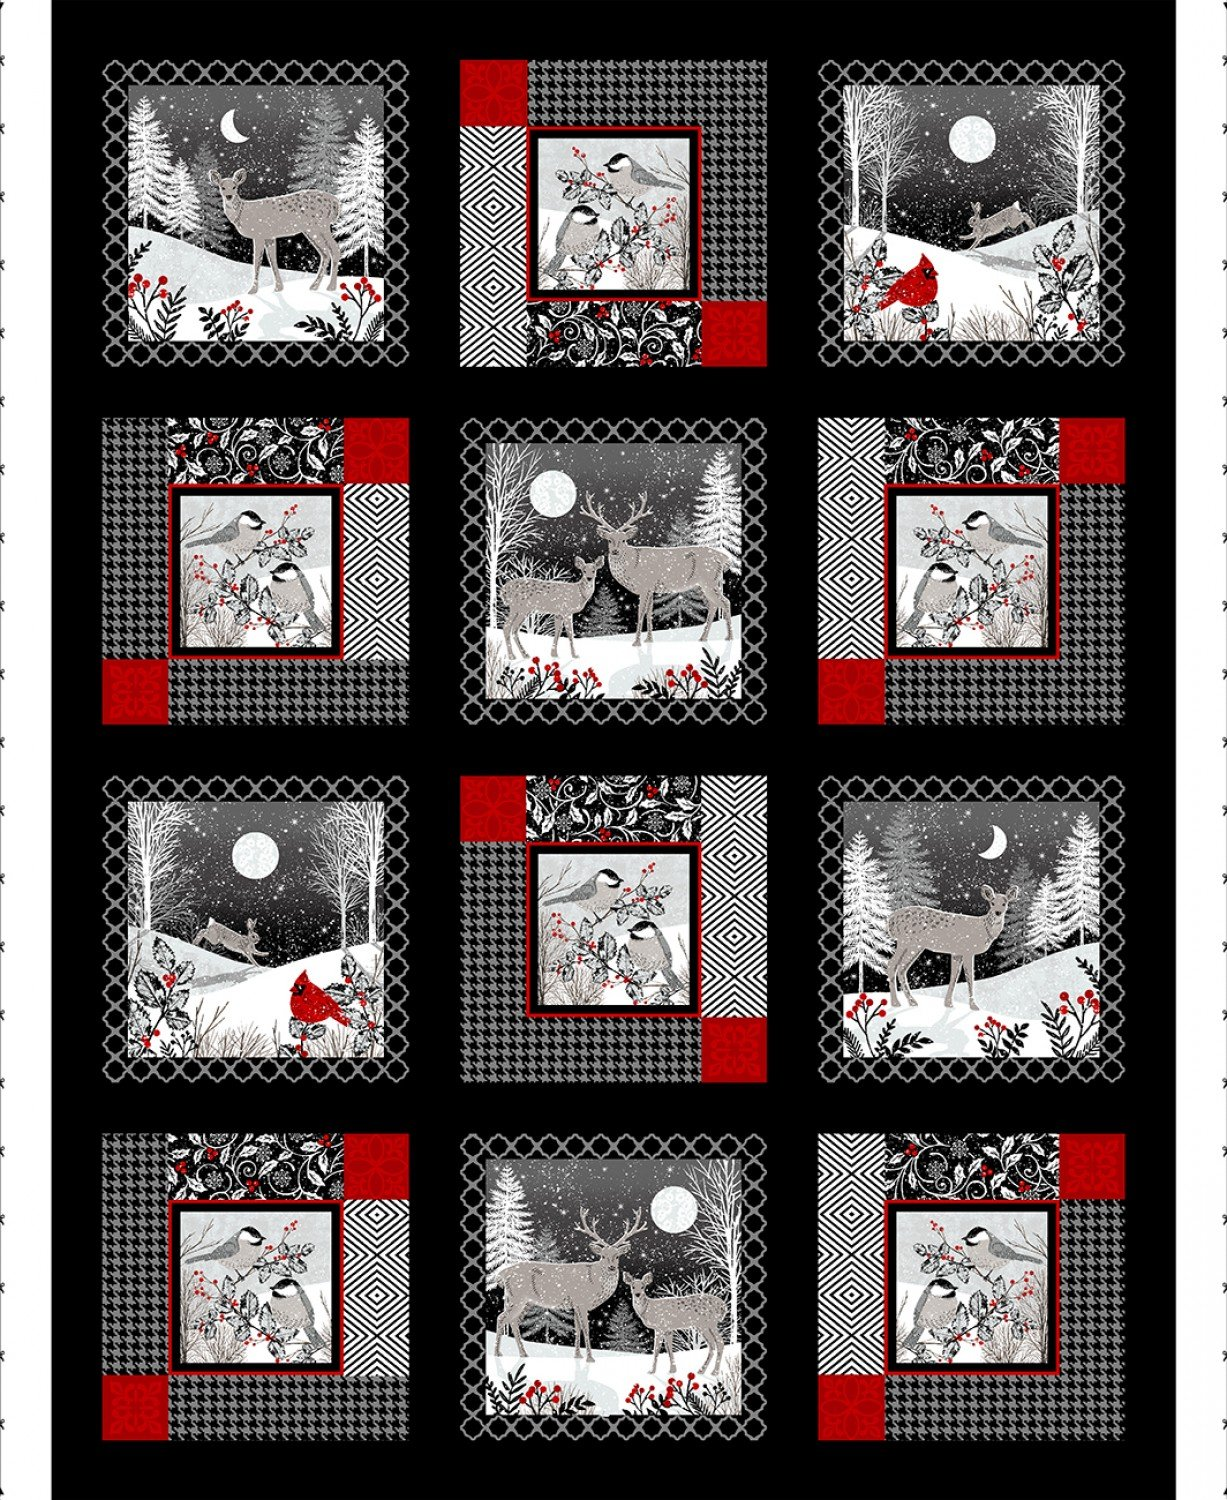 SE-Midwinter Song 5133P-95 Black/Red - 36 Panel